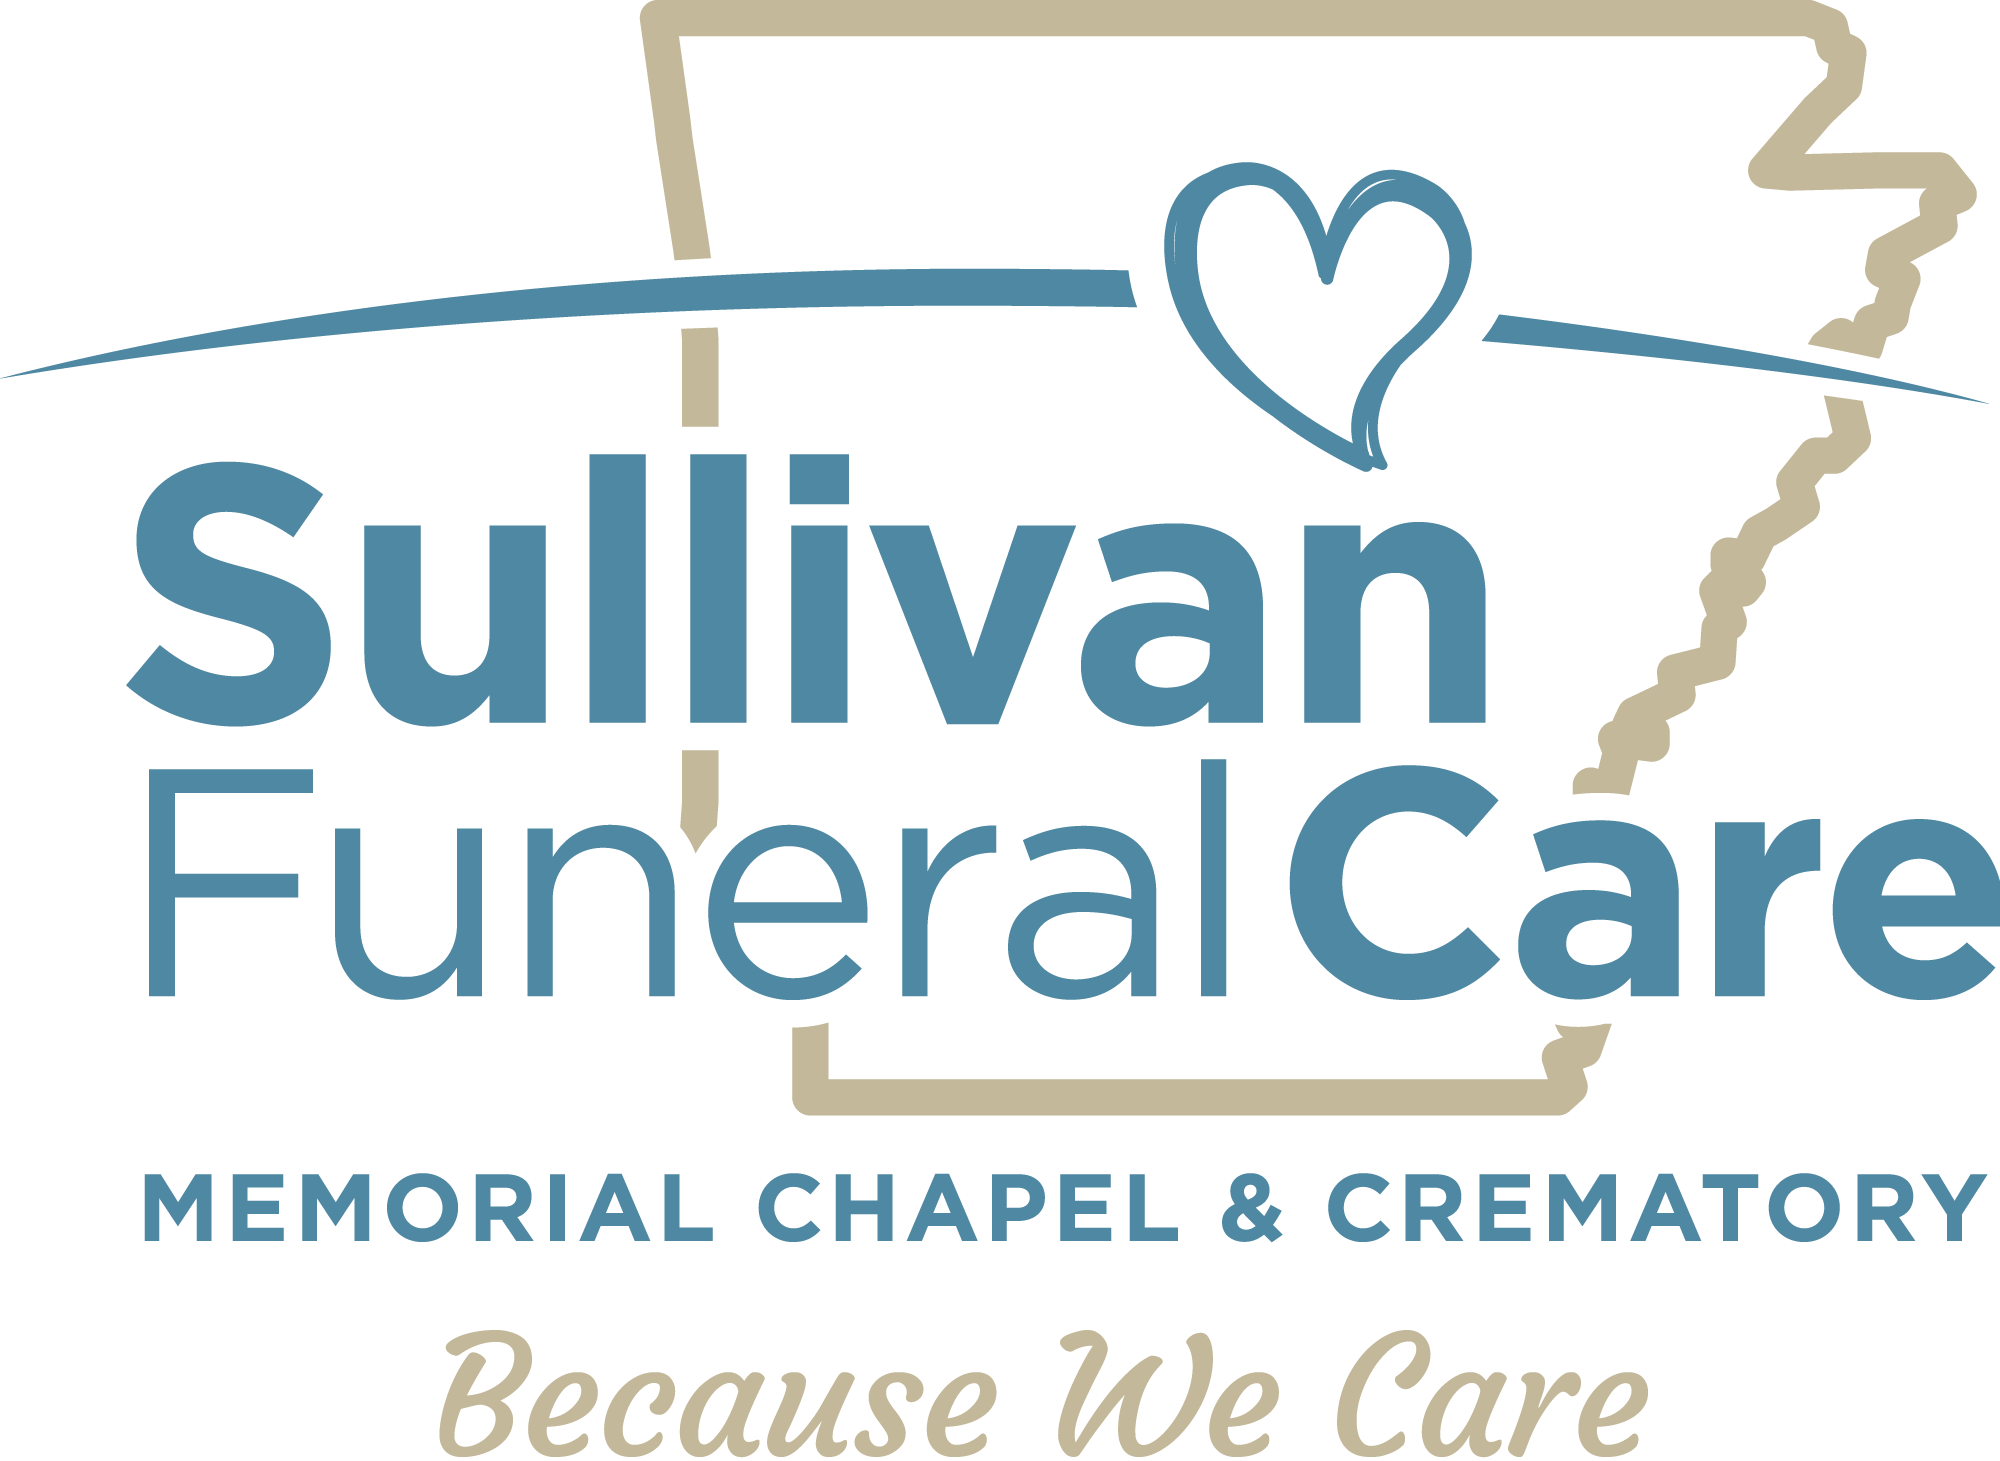 Funeral Home Near Me Searcy Arkansas Sullivan Funeral Care